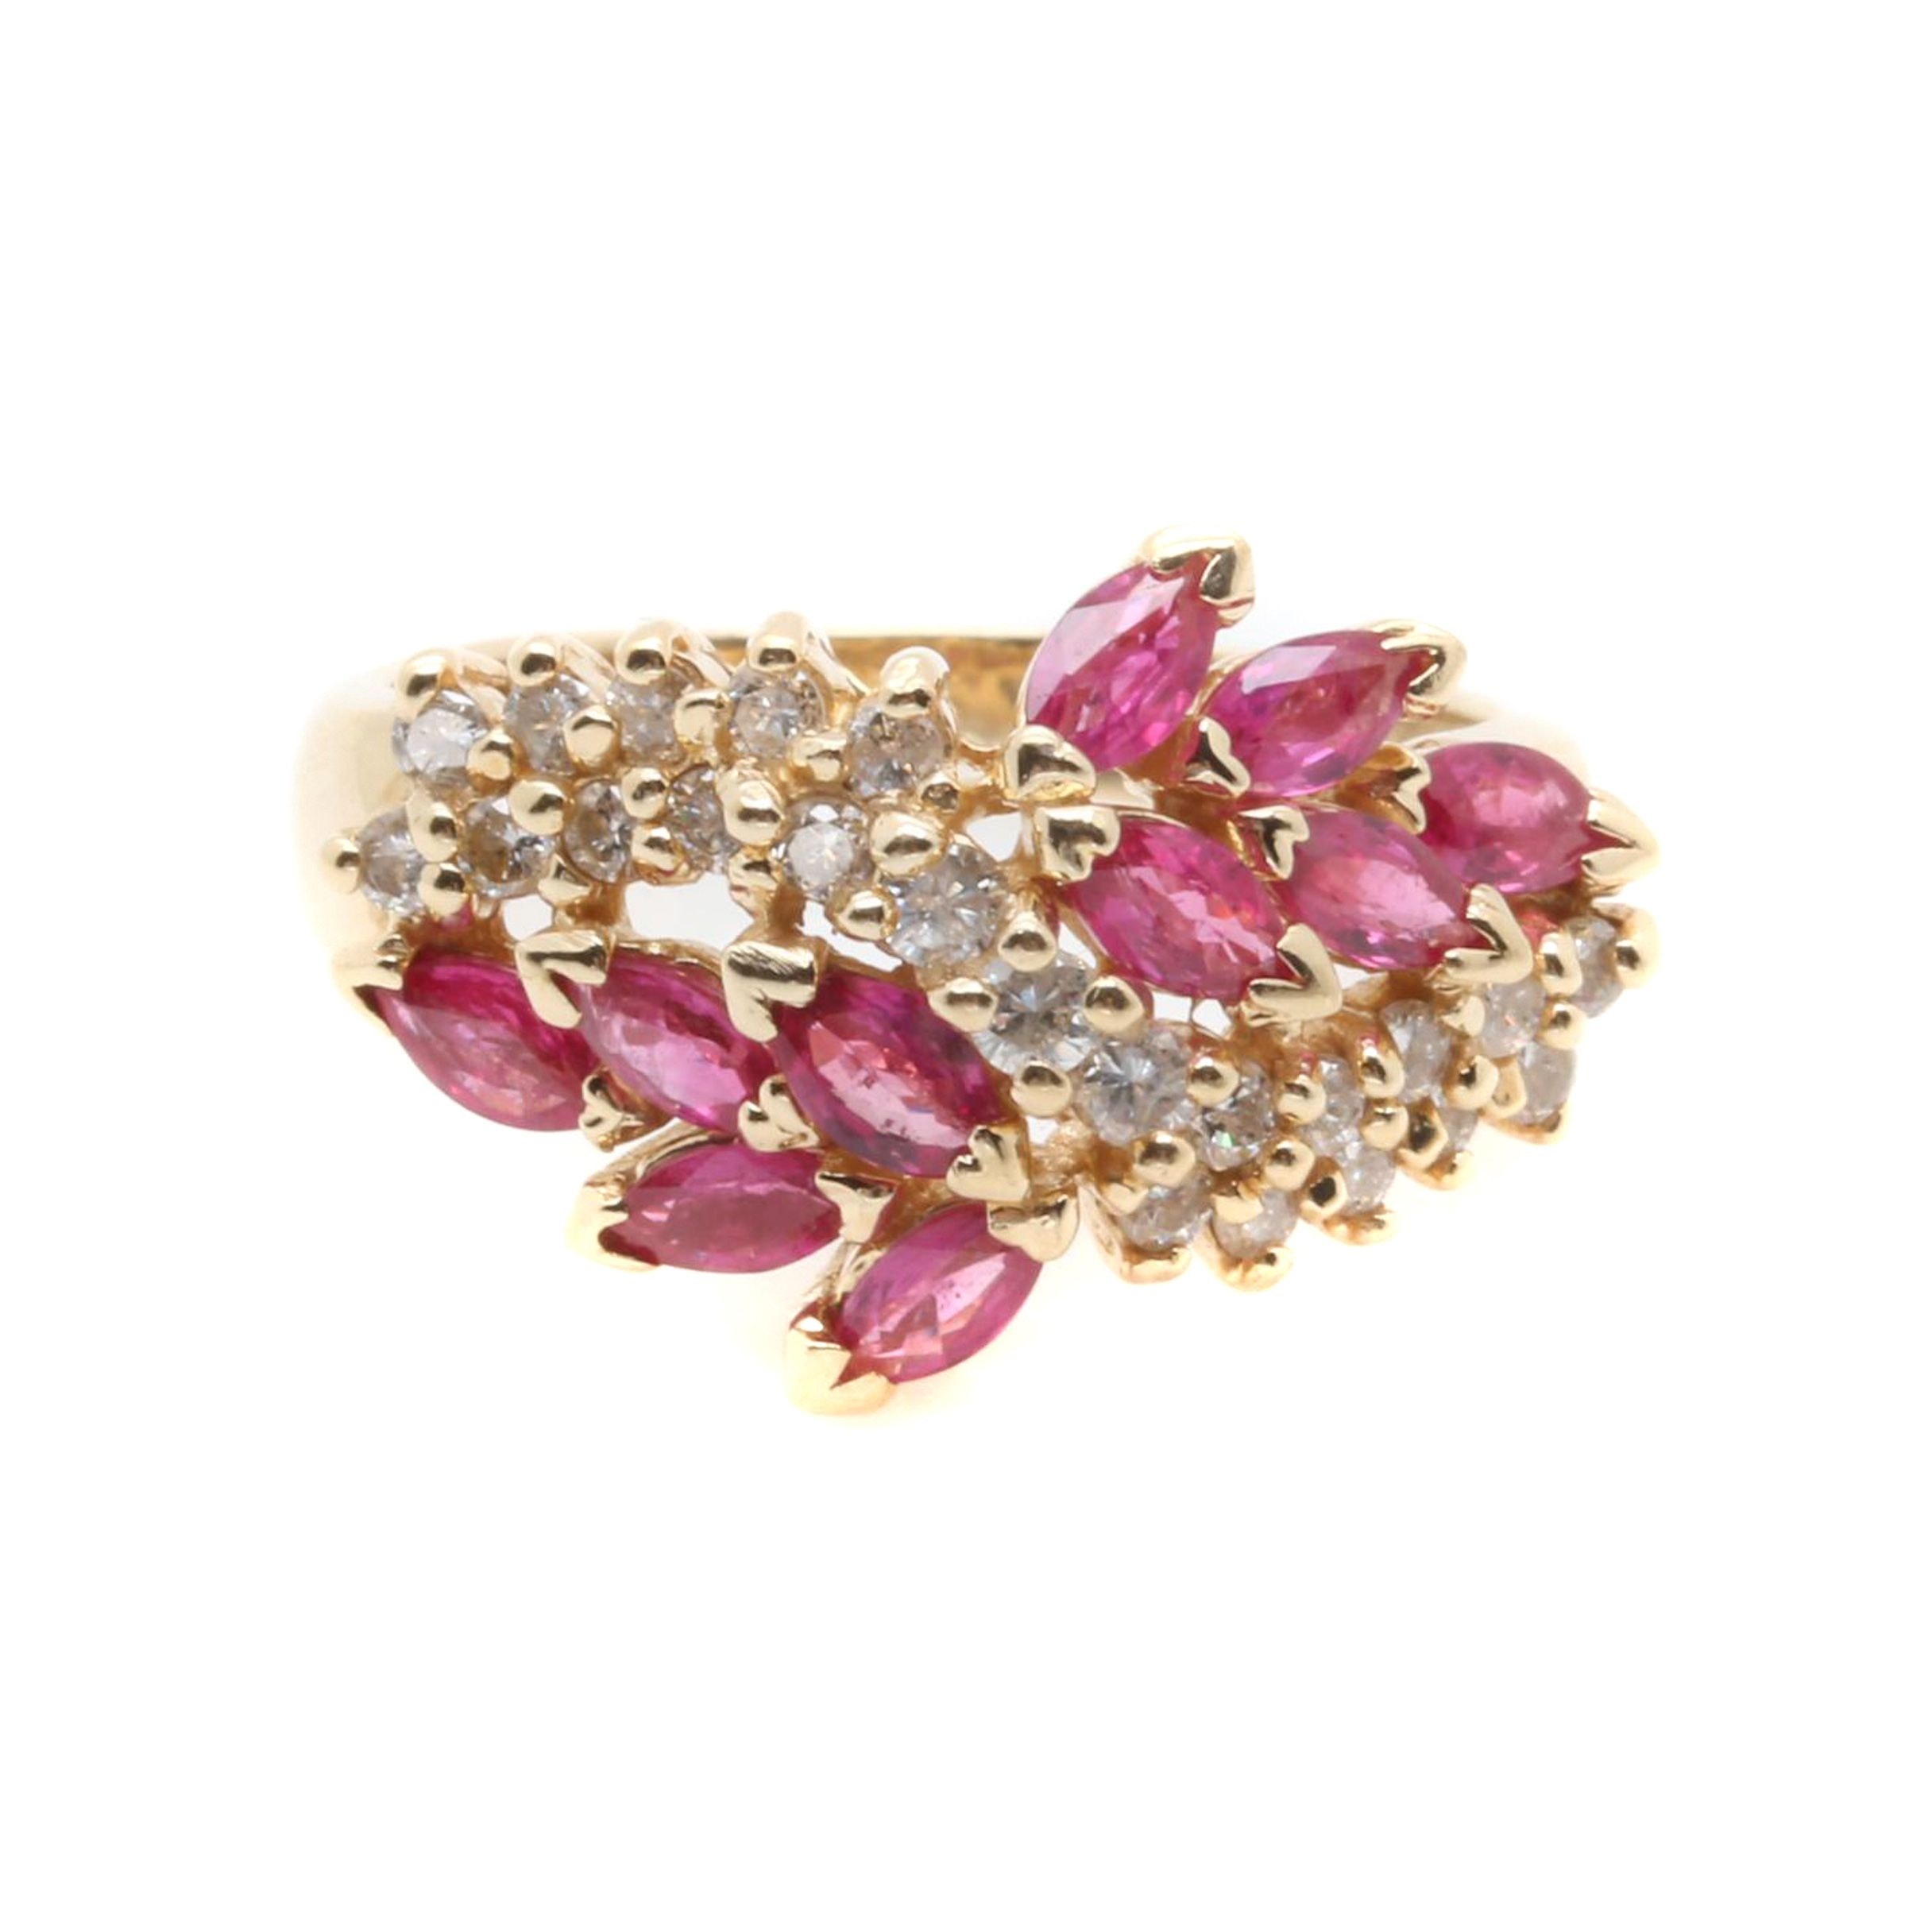 EFFY 14K Yellow Gold Diamond and Ruby Ring